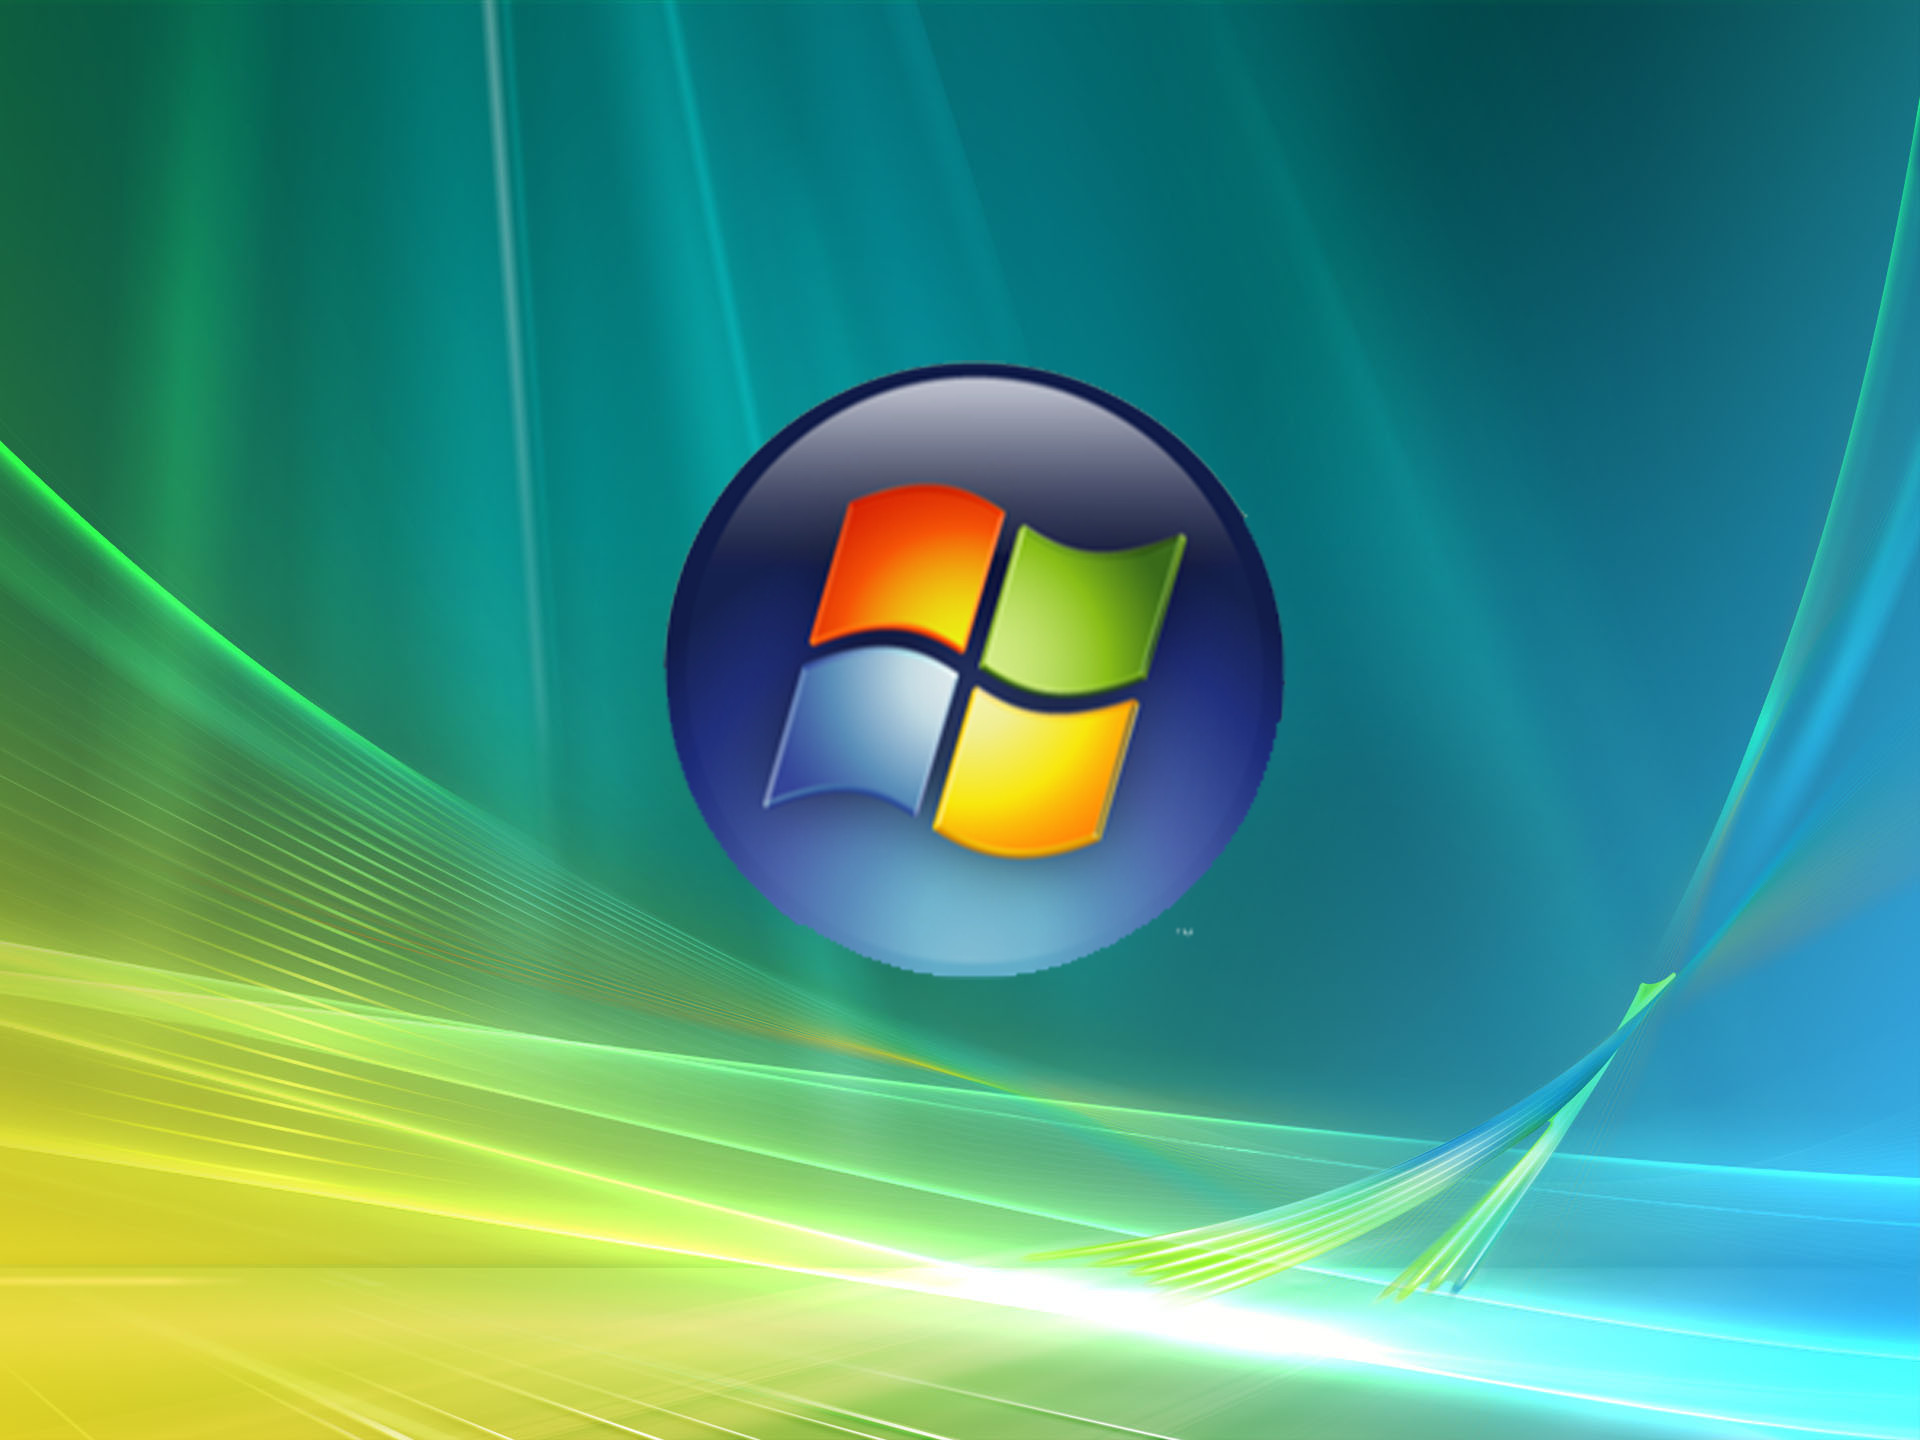 Windows microsoft windows wallpaper 34435725 fanpop for Microsoft windows